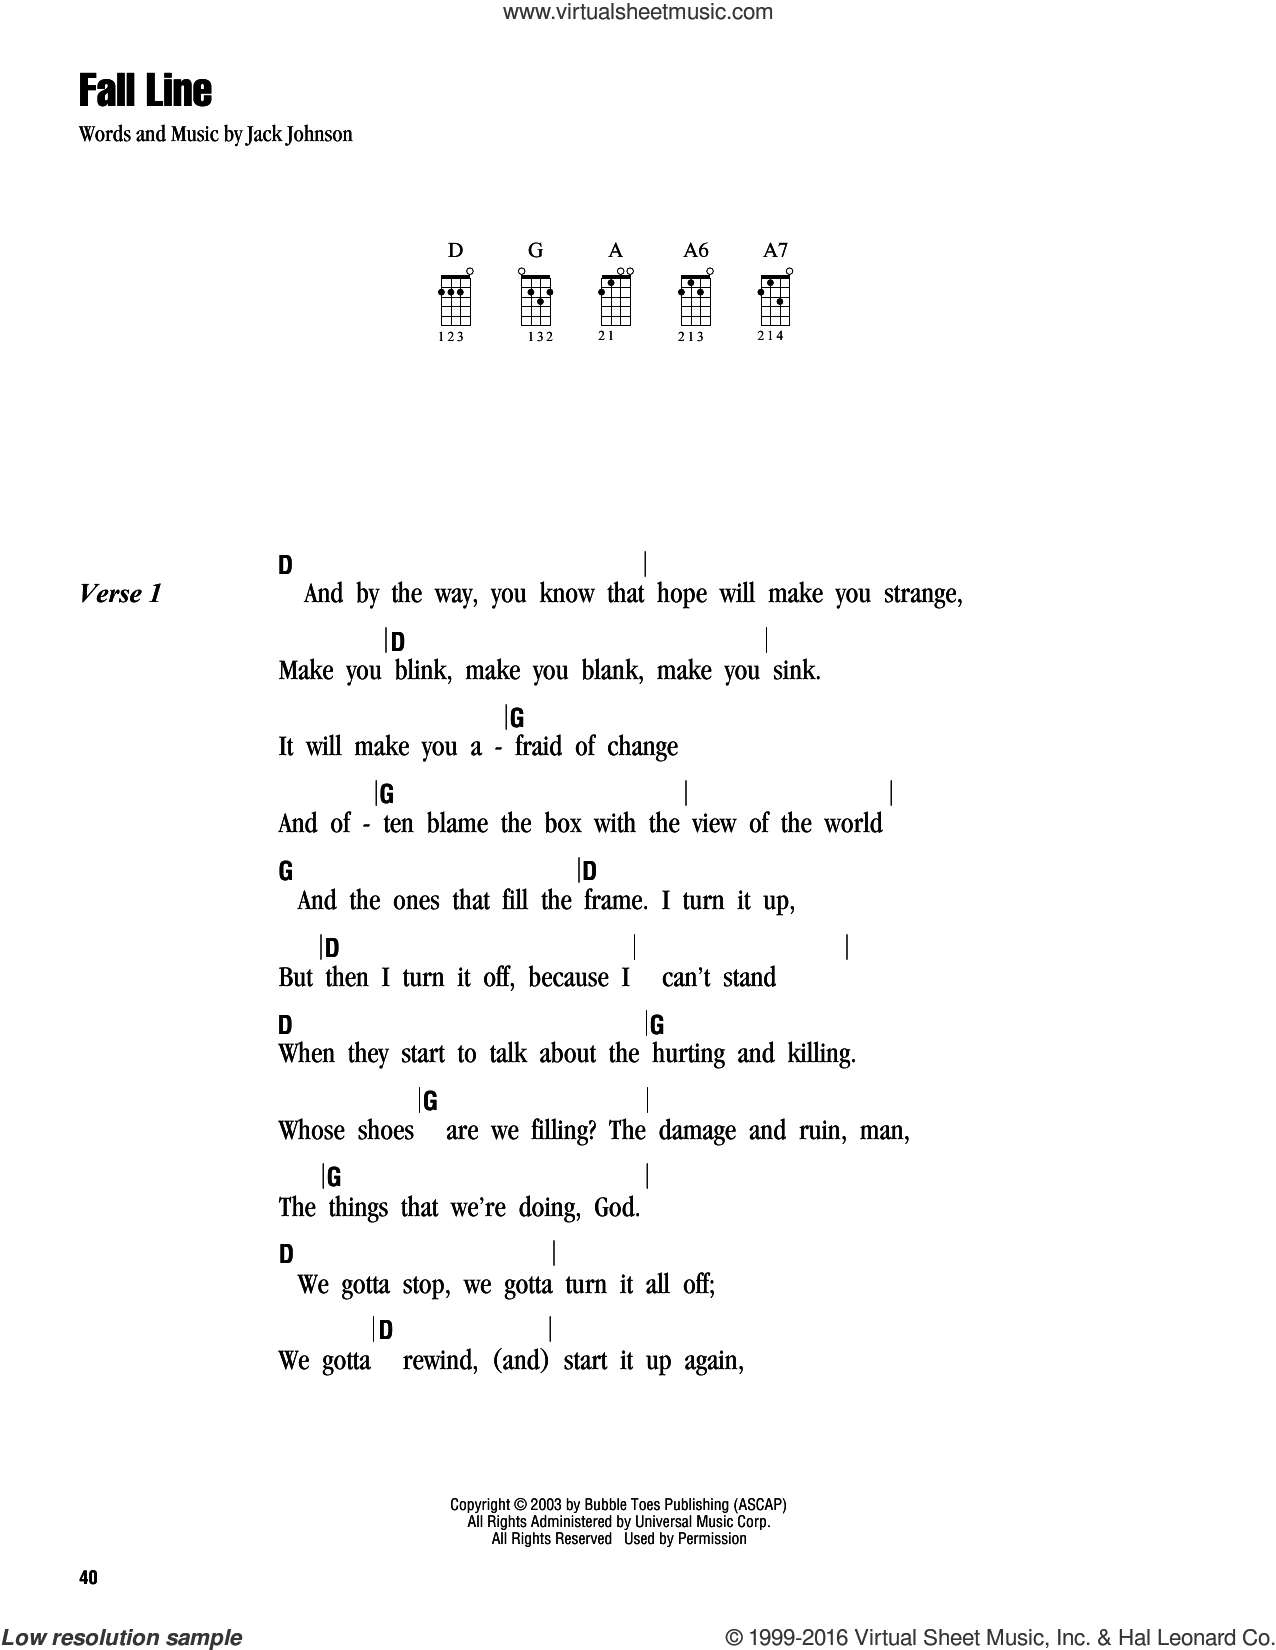 Fall Line sheet music for ukulele (chords) by Jack Johnson, intermediate skill level